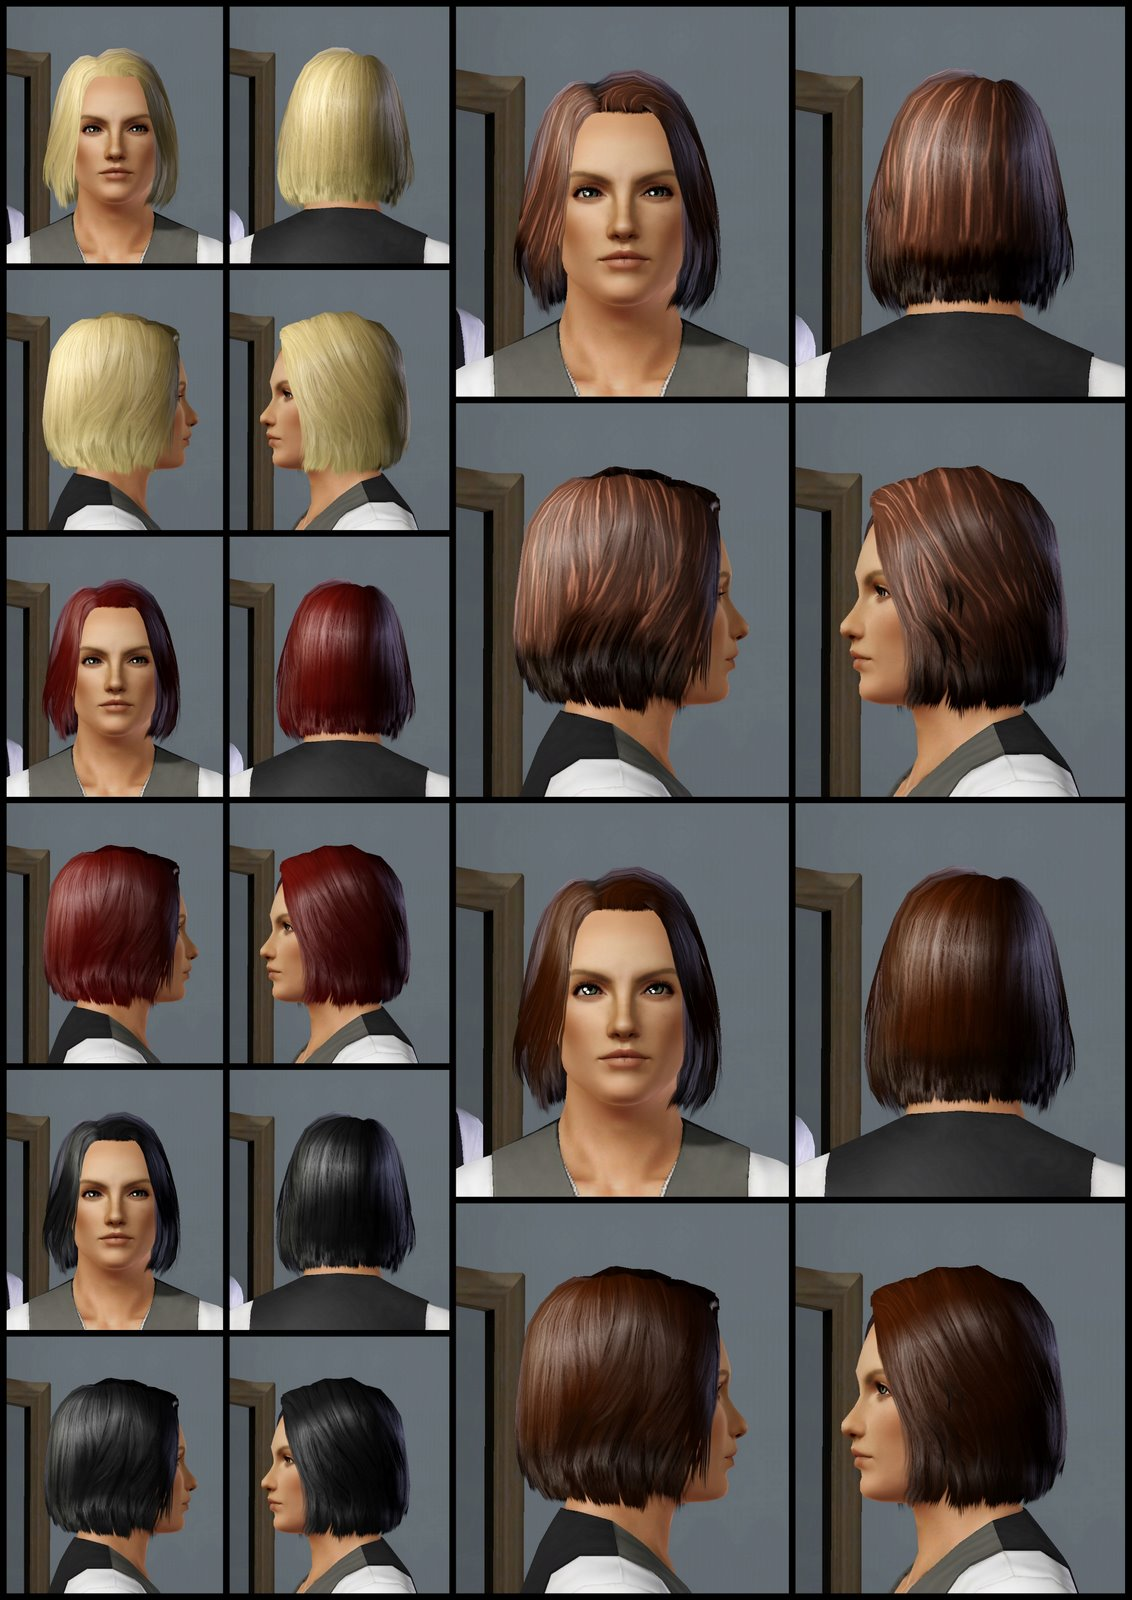 The Sims 3 Store: Hair Showroom: Fins out